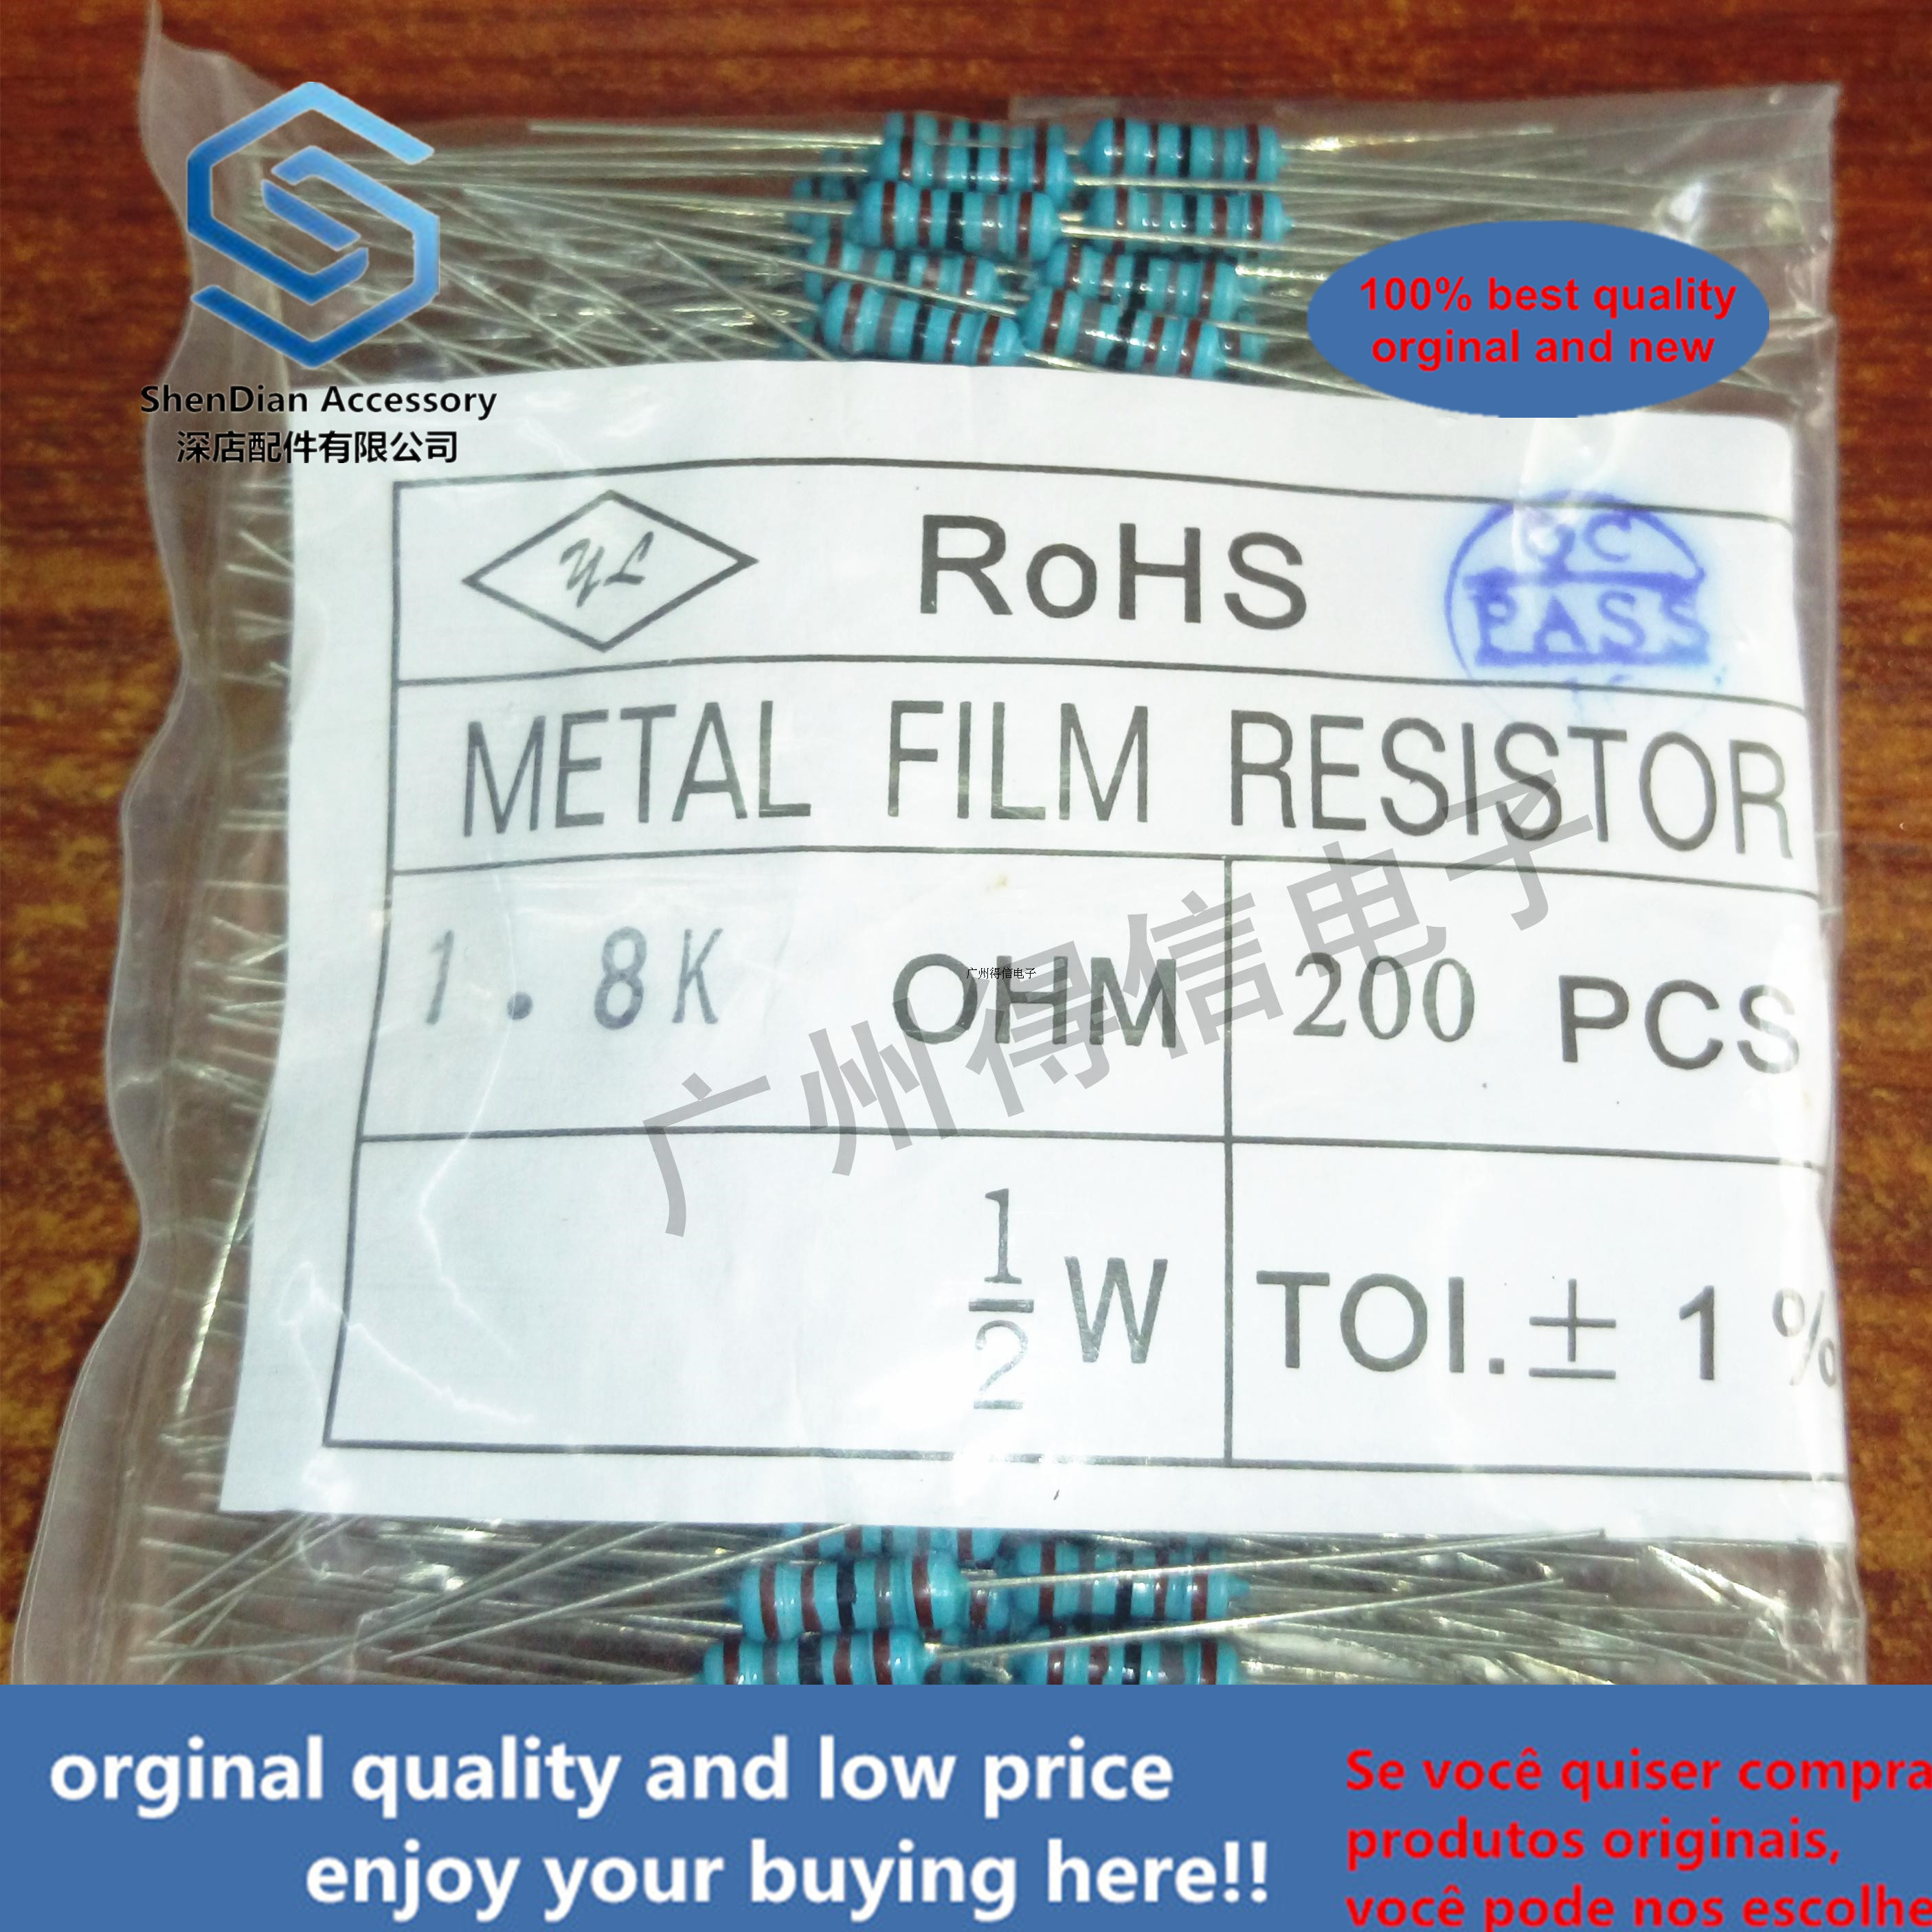 200pcs 1 / 2W 6K8 6800 Euro 1% Brand New Metal Film Iron Feet Resistance Bag Pack 200 Pcs